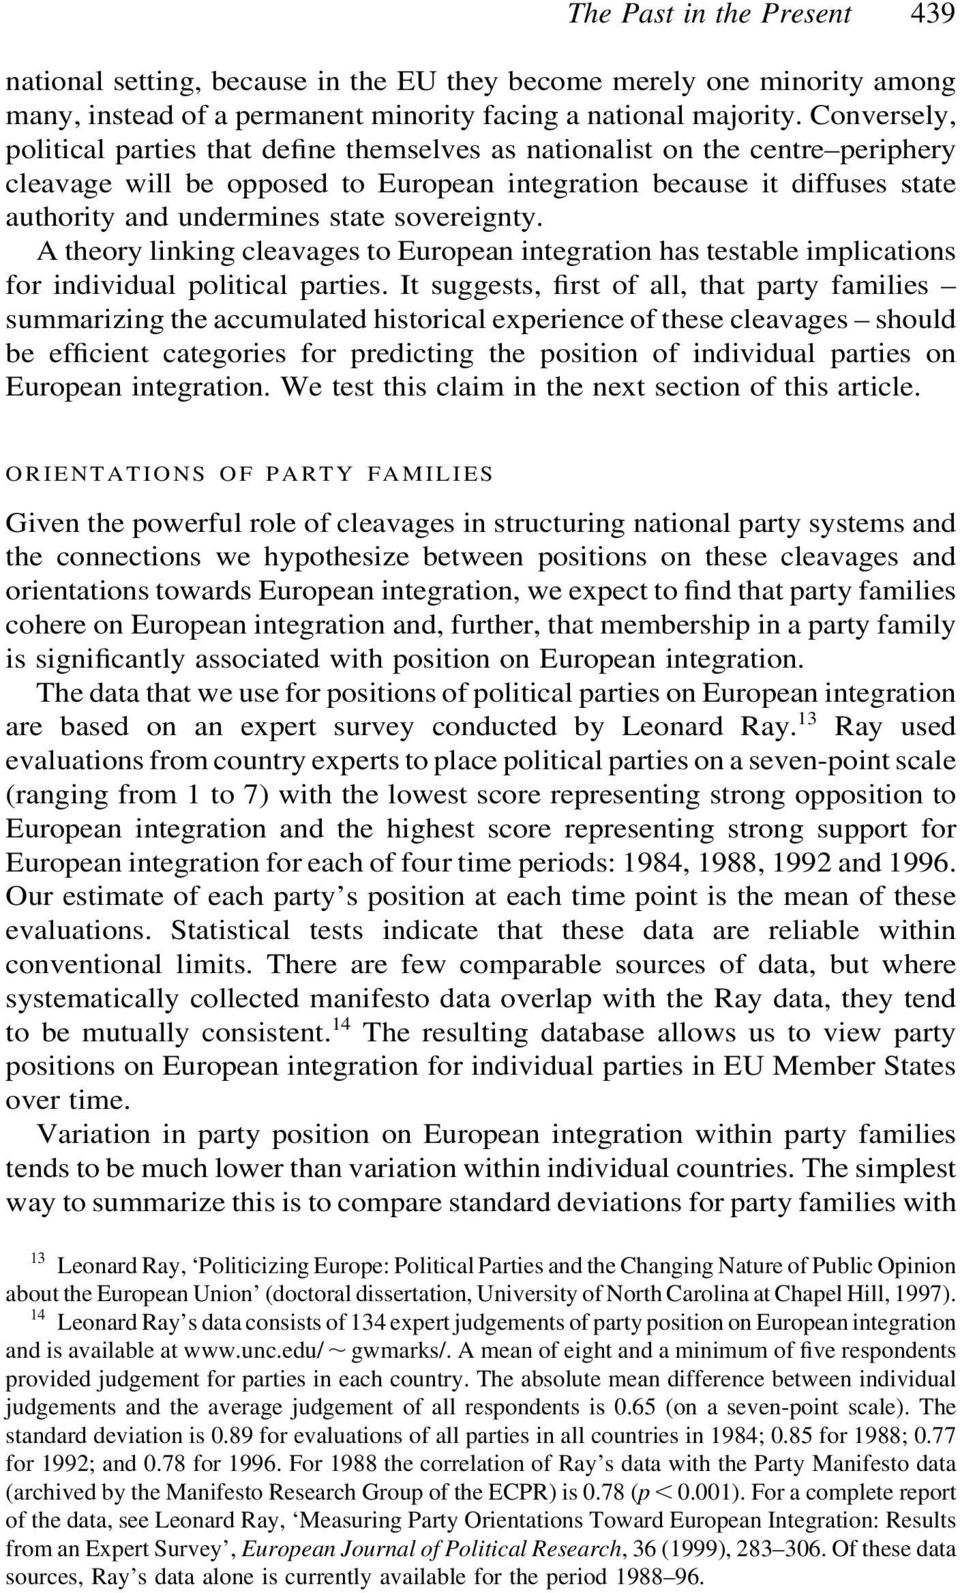 sovereignty. A theory linking cleavages to European integration has testable implications for individual political parties.